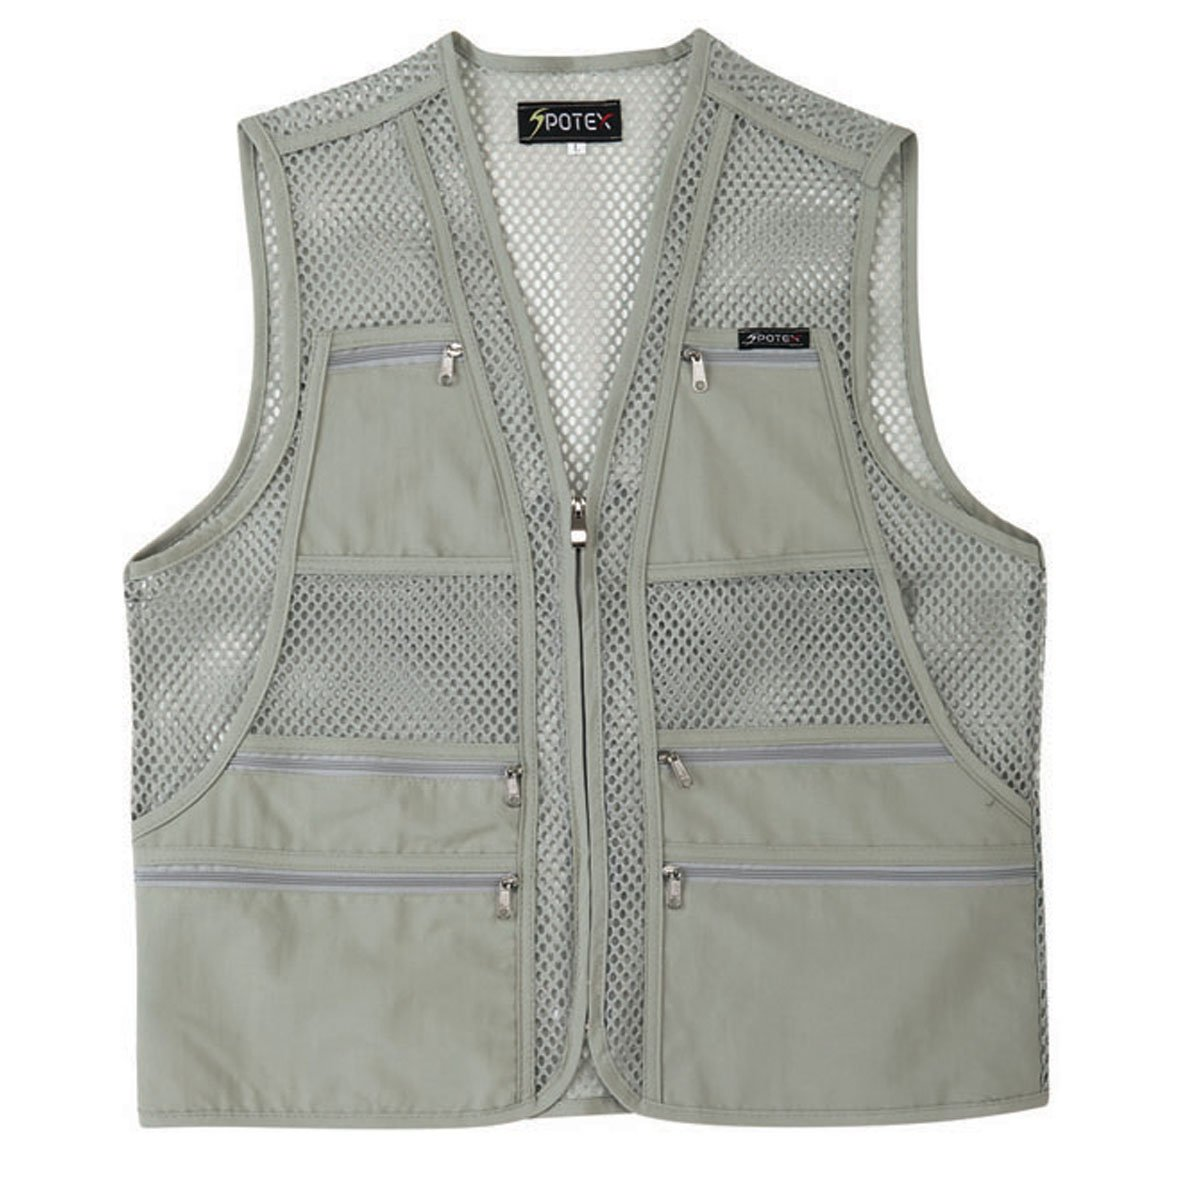 bc4e26d500492 Amazon.com : myglory77mall Men's Multi Pockets Fly Fishing Hunting Mesh Vest  Outdoor Jacket : Sports & Outdoors